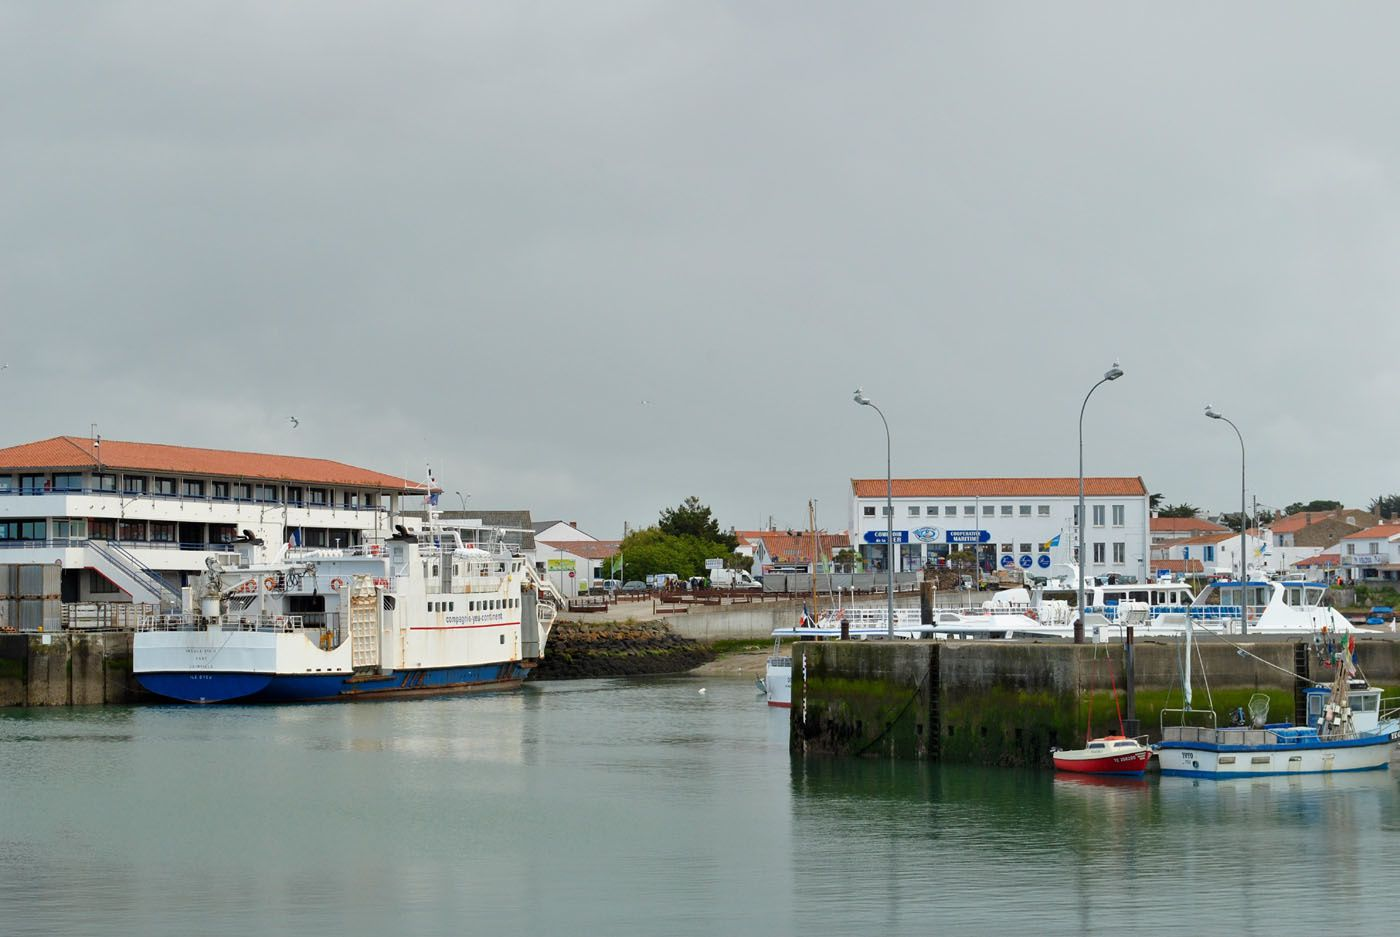 L'Ile d'Yeu: Port Joinville. (Photo prise le 29.05.2013)